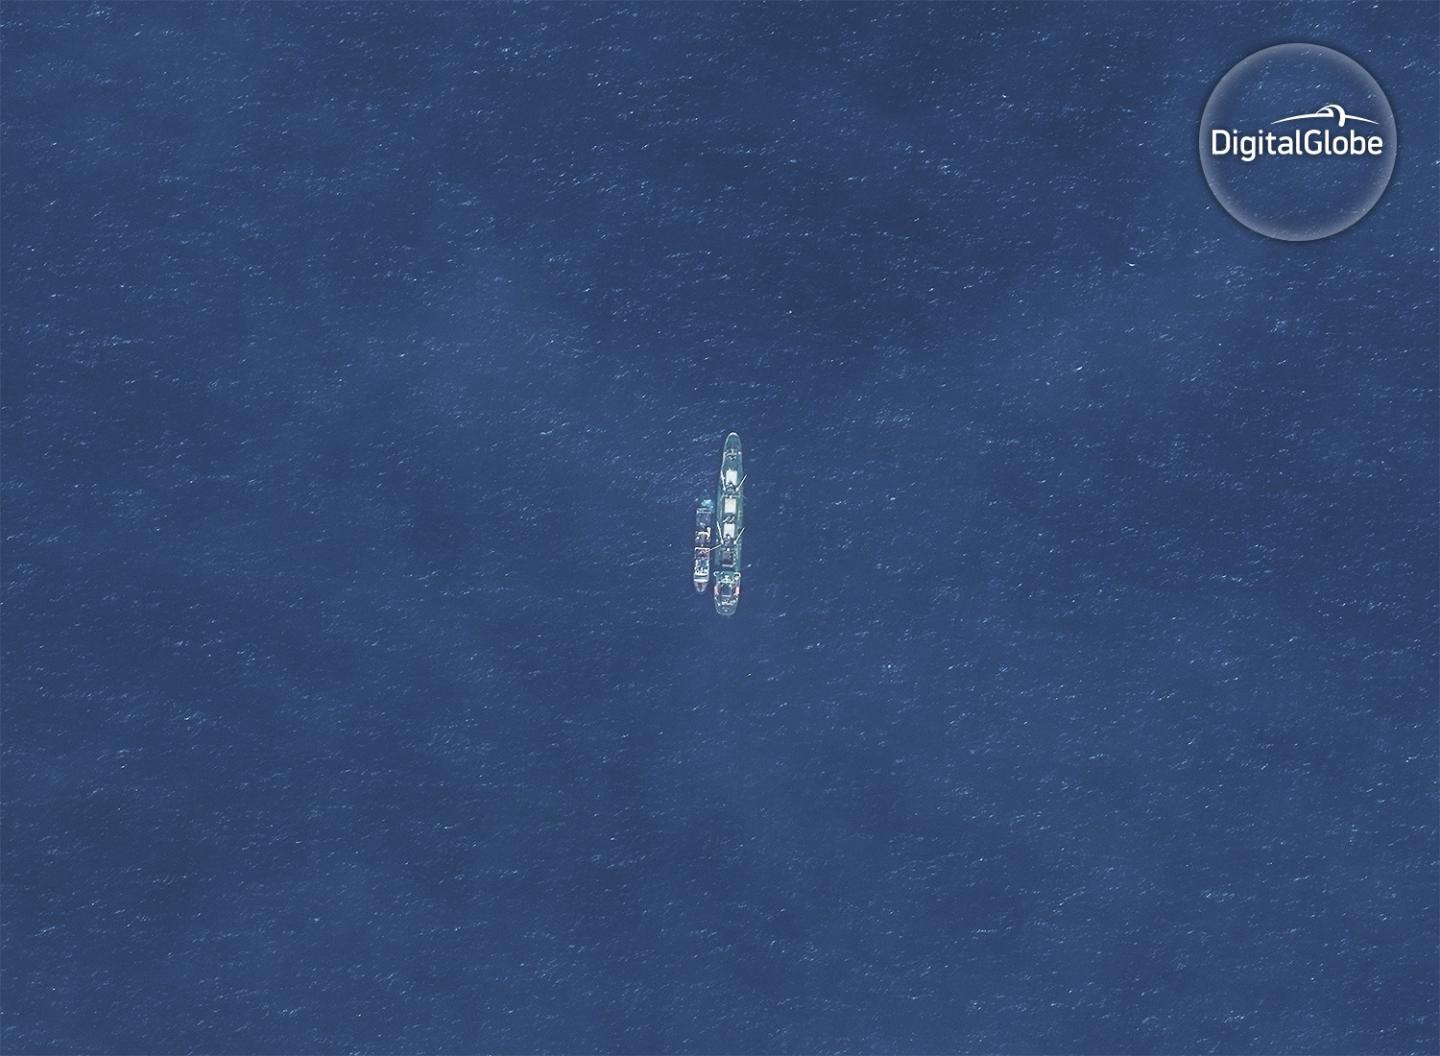 Two Vessels Rendezvous off the Coast of Argentina in a Likely Transshipment